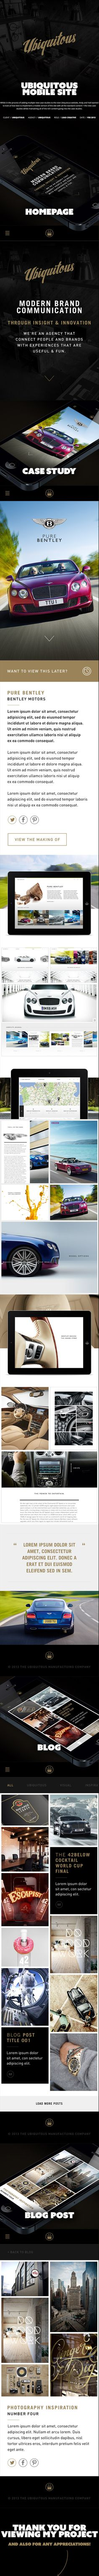 Ubiquitous Mobile Site on Behance #web #mobile